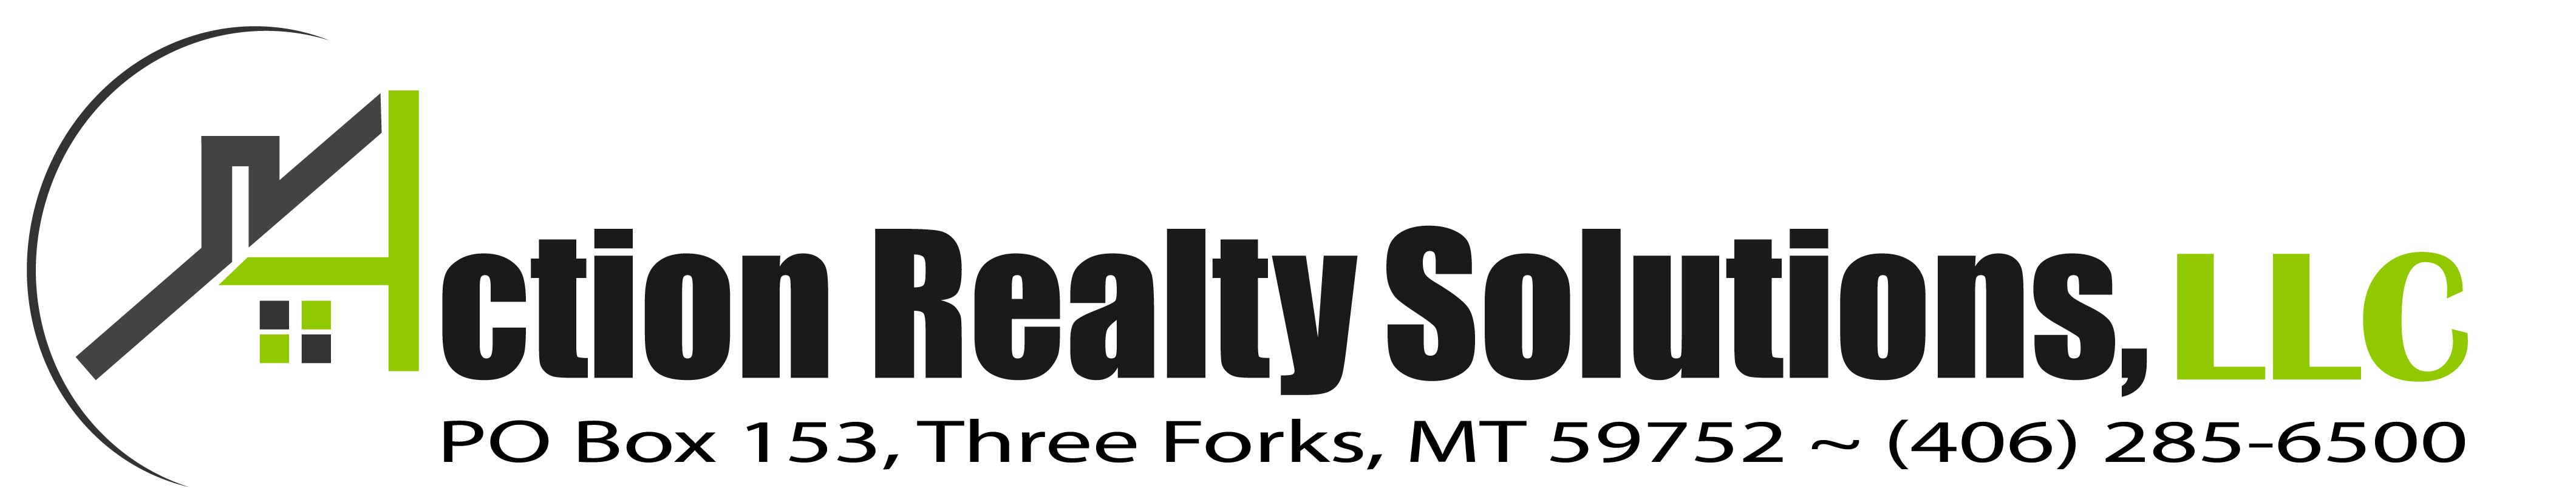 Action Realty Solutions, LLC